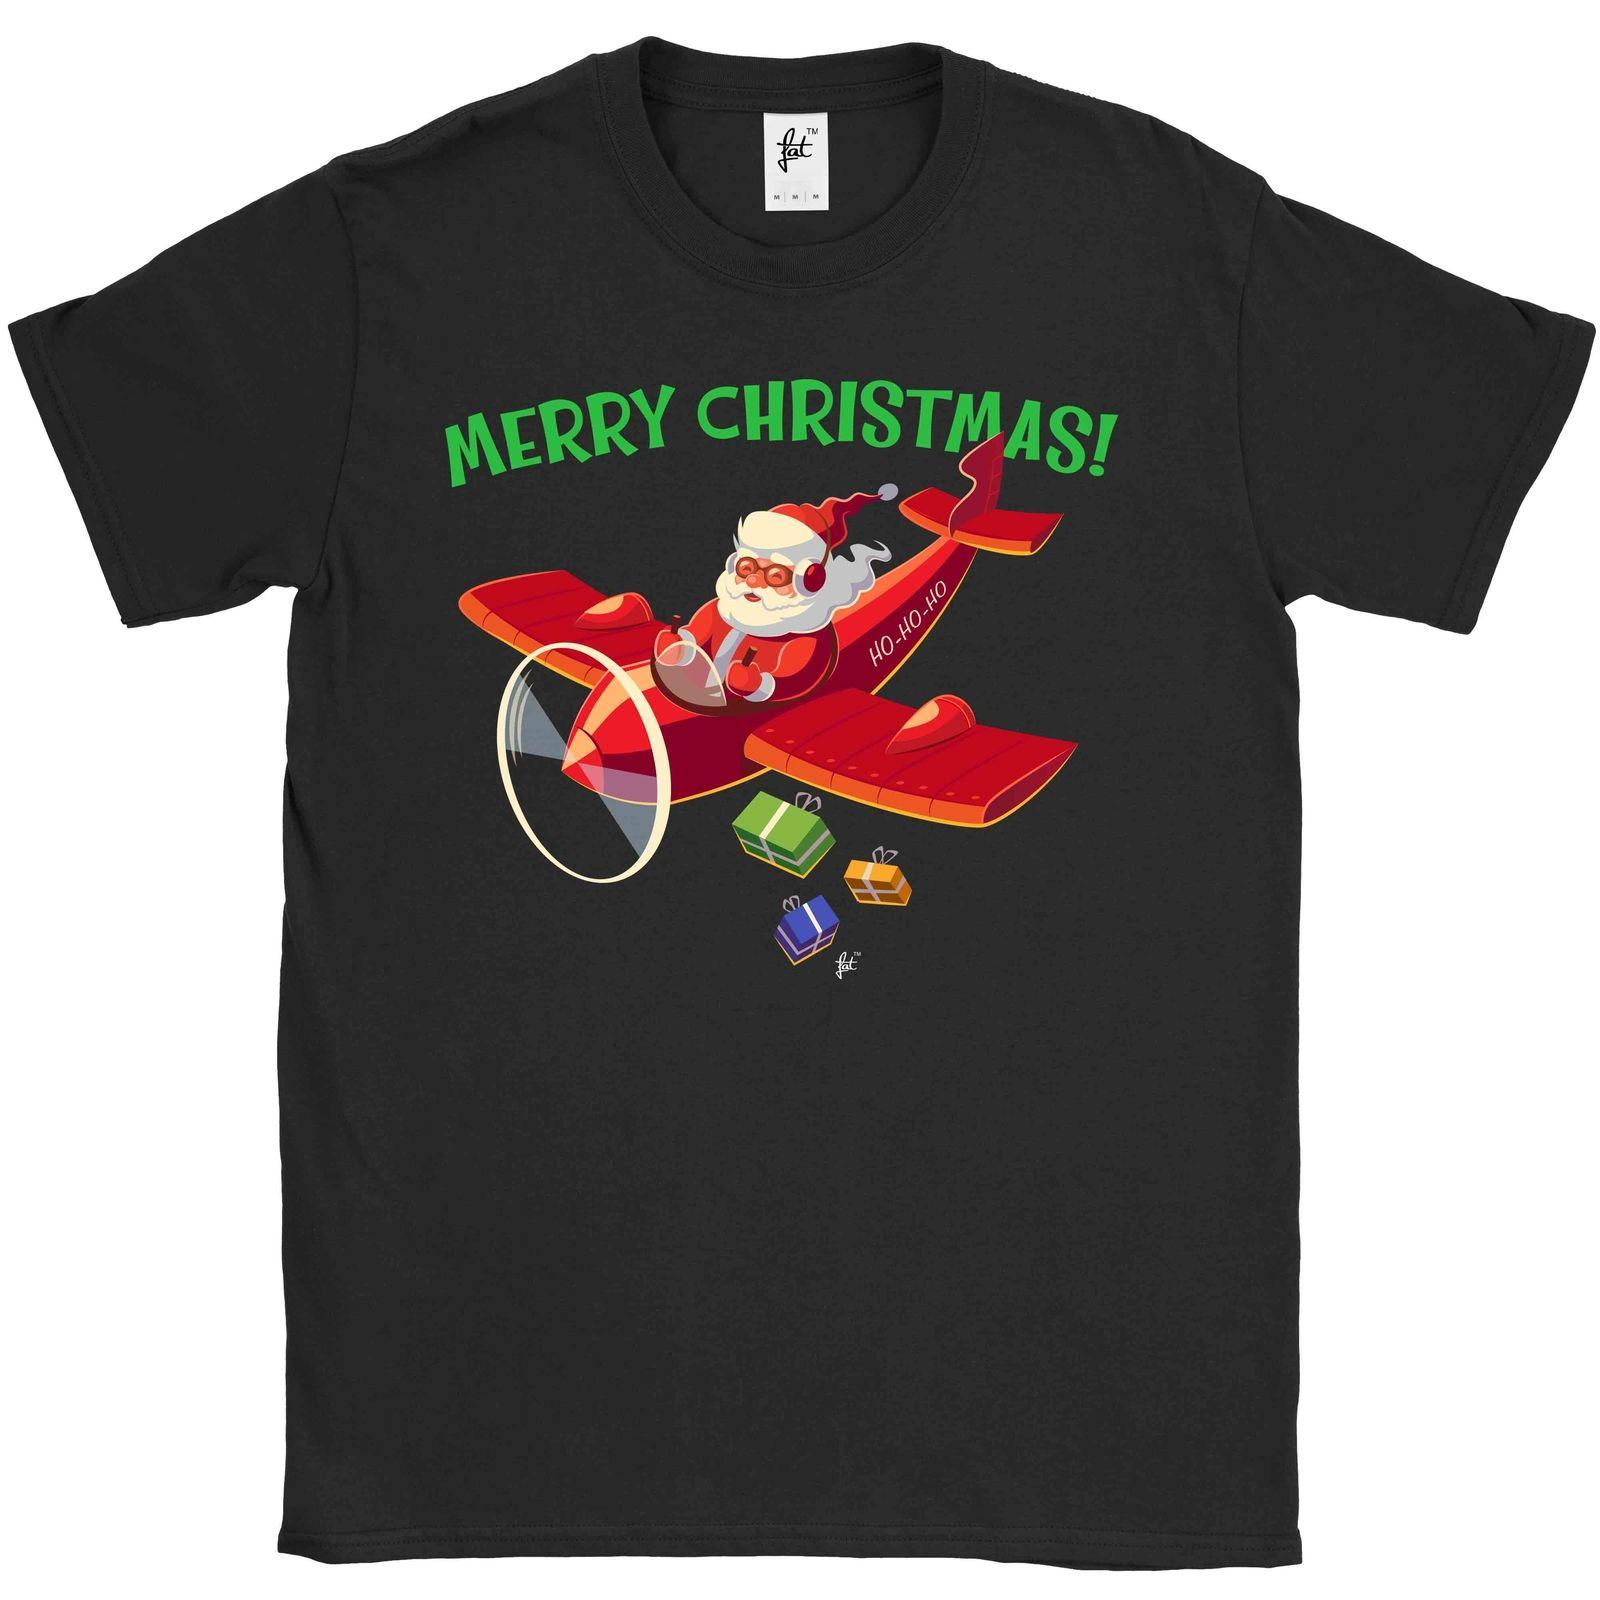 Santa Delivers Presents Gifts Plane For Christmas Mens T Shirt